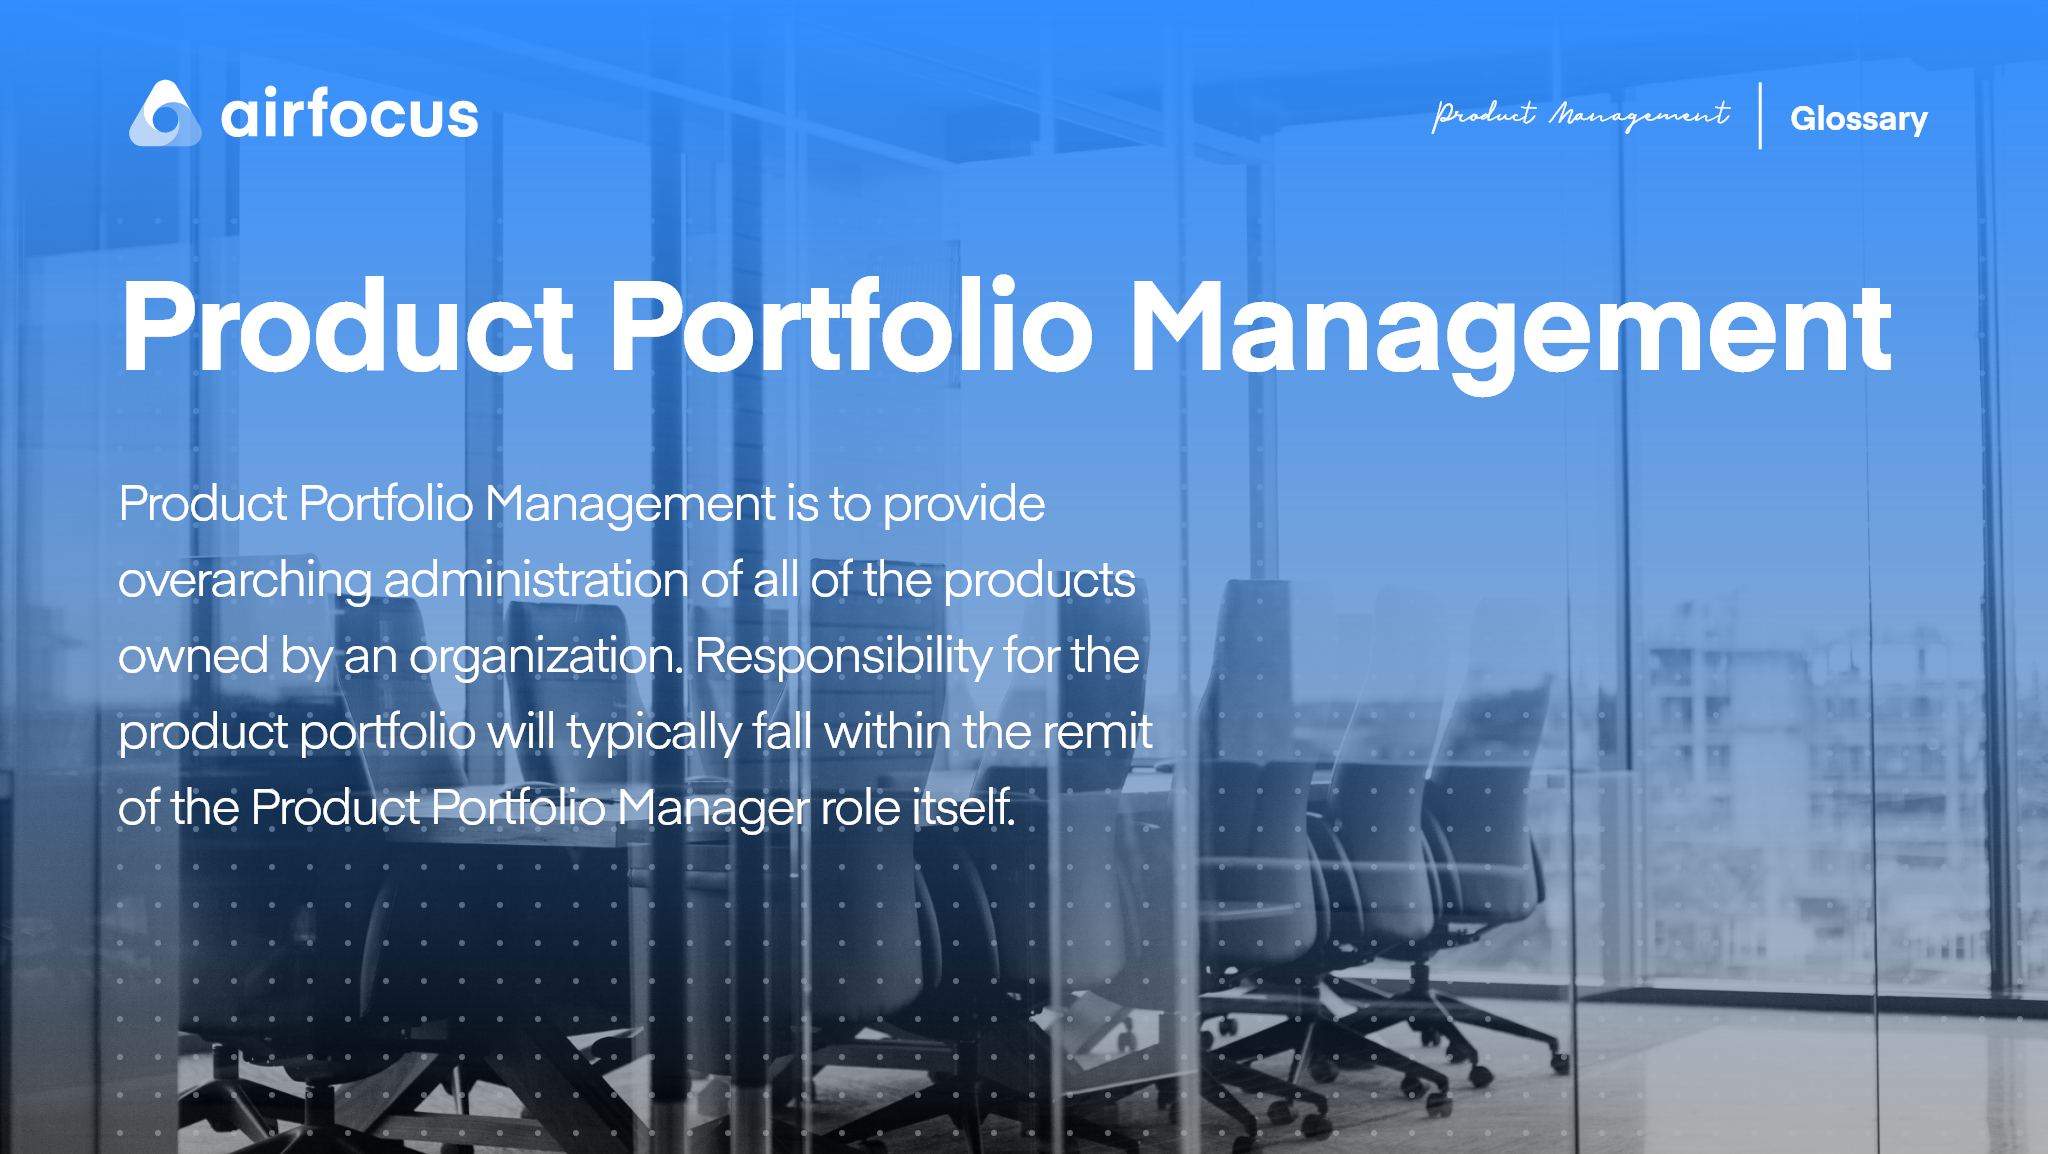 What is Product Portfolio Management?